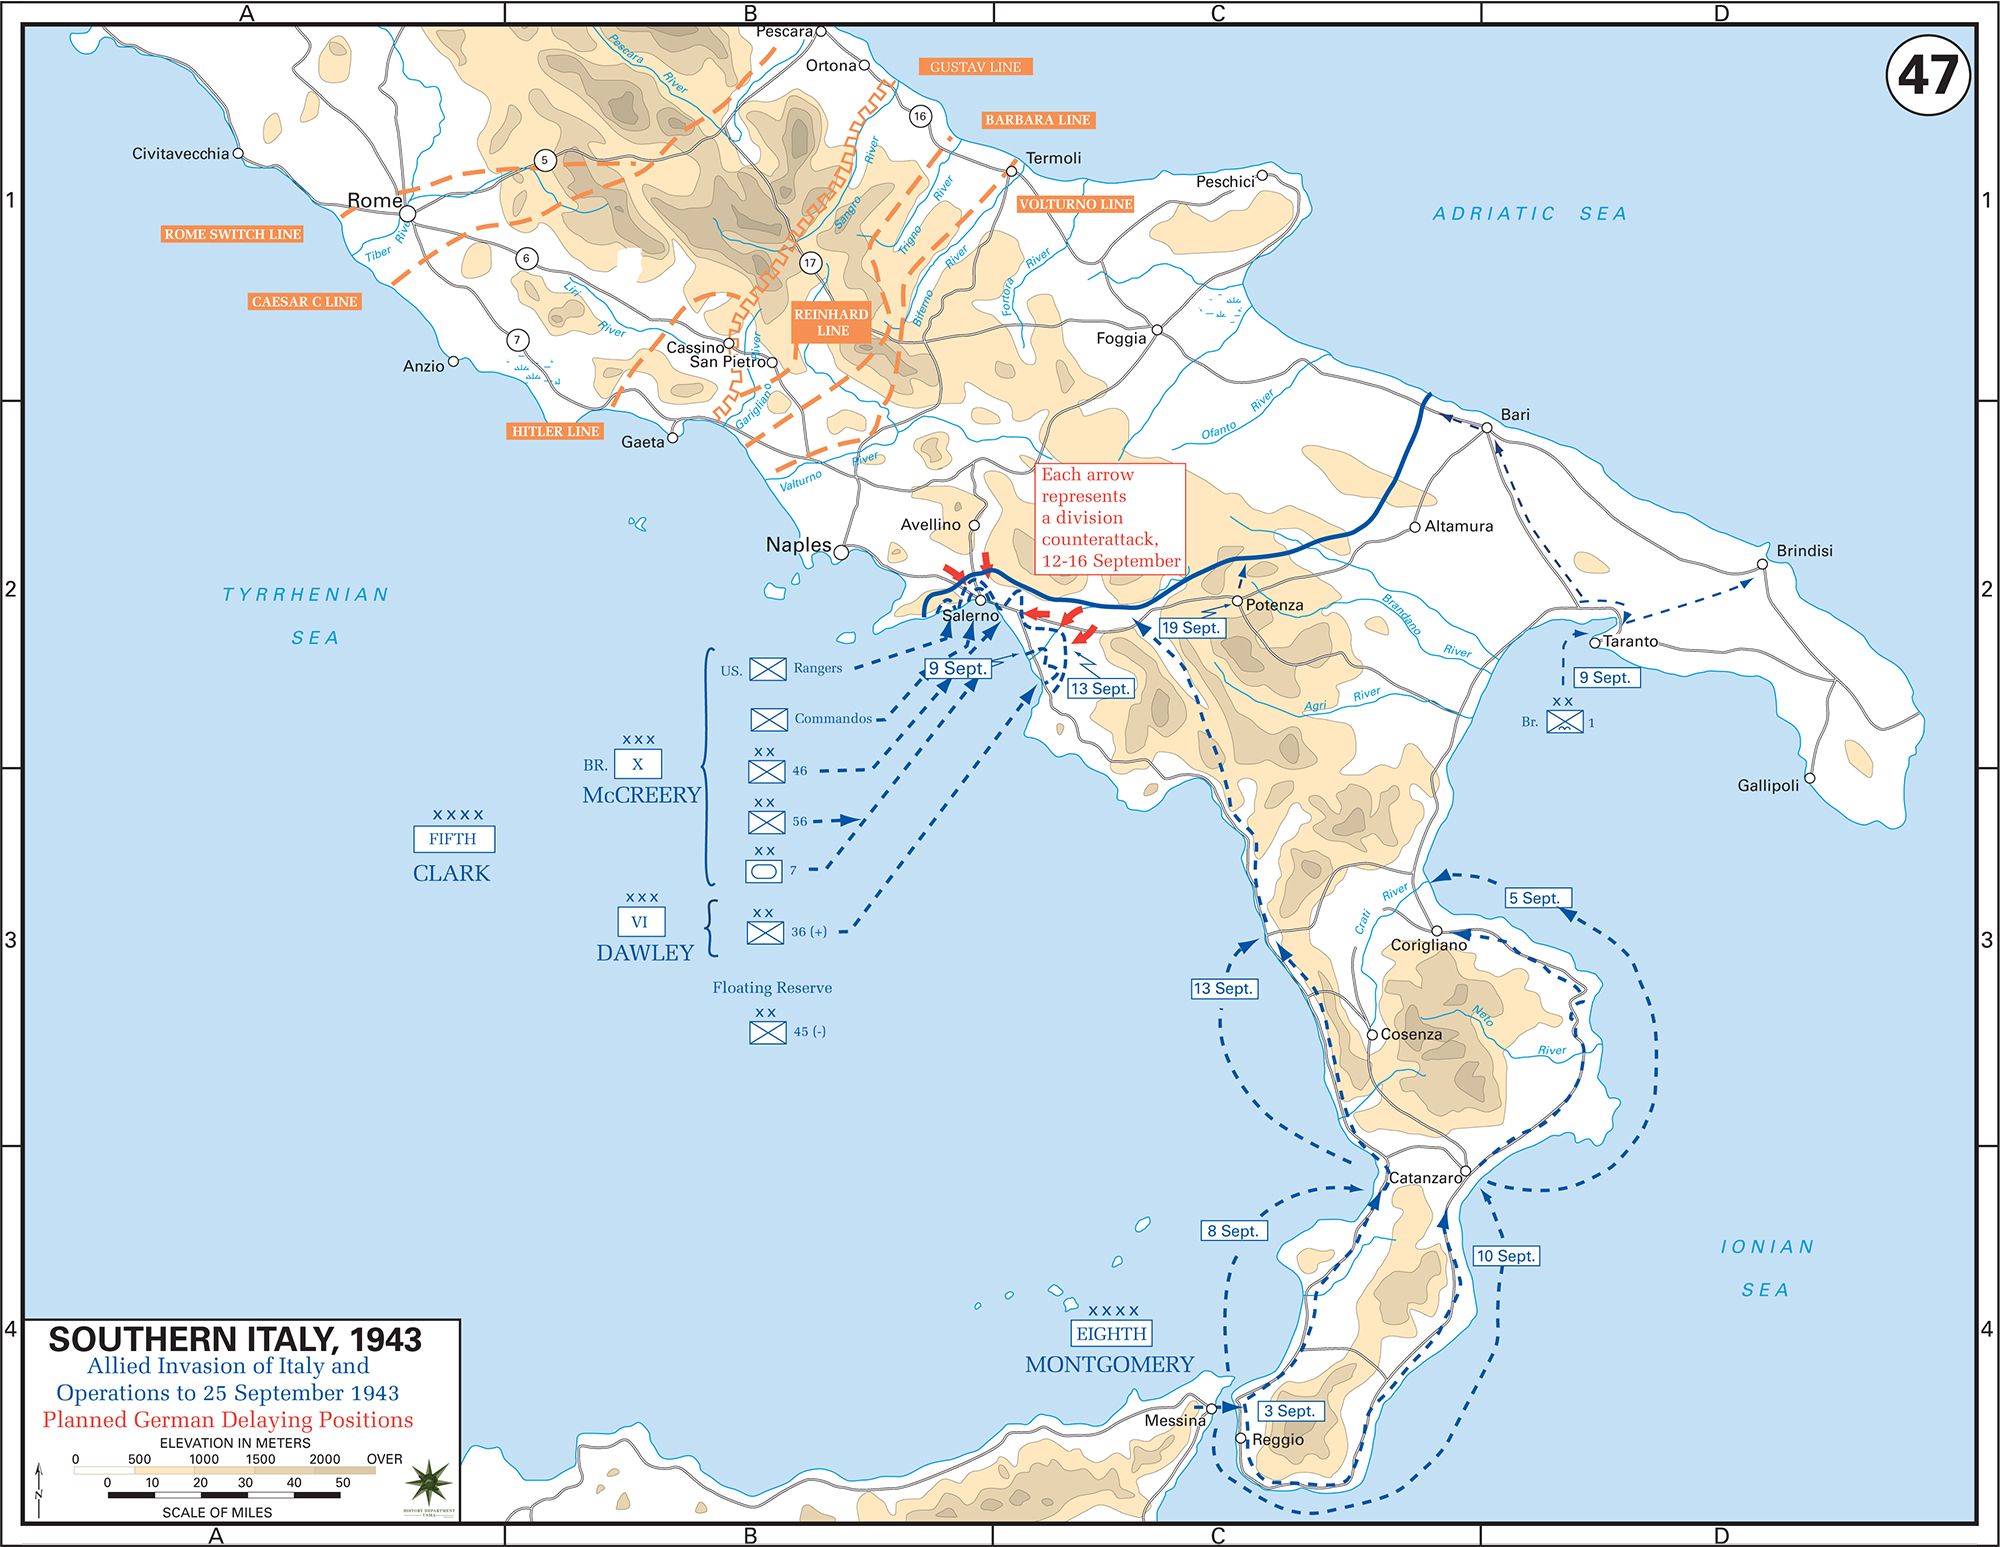 Map of southern italy september 1943 wwii italy september 1943 allied invasion planned german delaying positions gumiabroncs Gallery